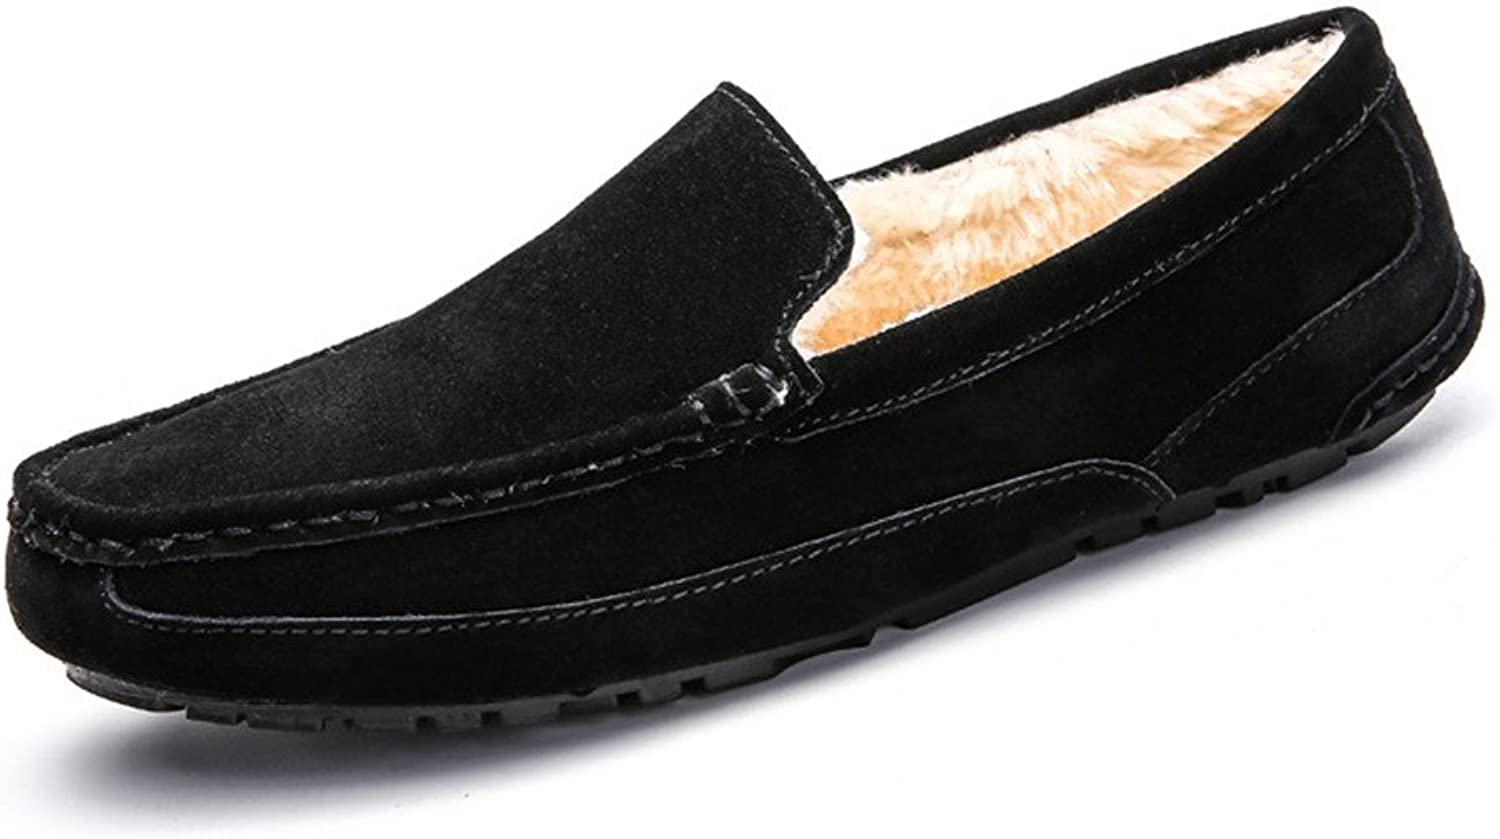 Leather Driving shoes Men's Stylish casual comfort classic Driving Penny Loafers Handwork Suture Suede Genuine Leather Moccasins Boat shoes Lazy Driving shoes (color   Warm-Black, Size   7 UK)